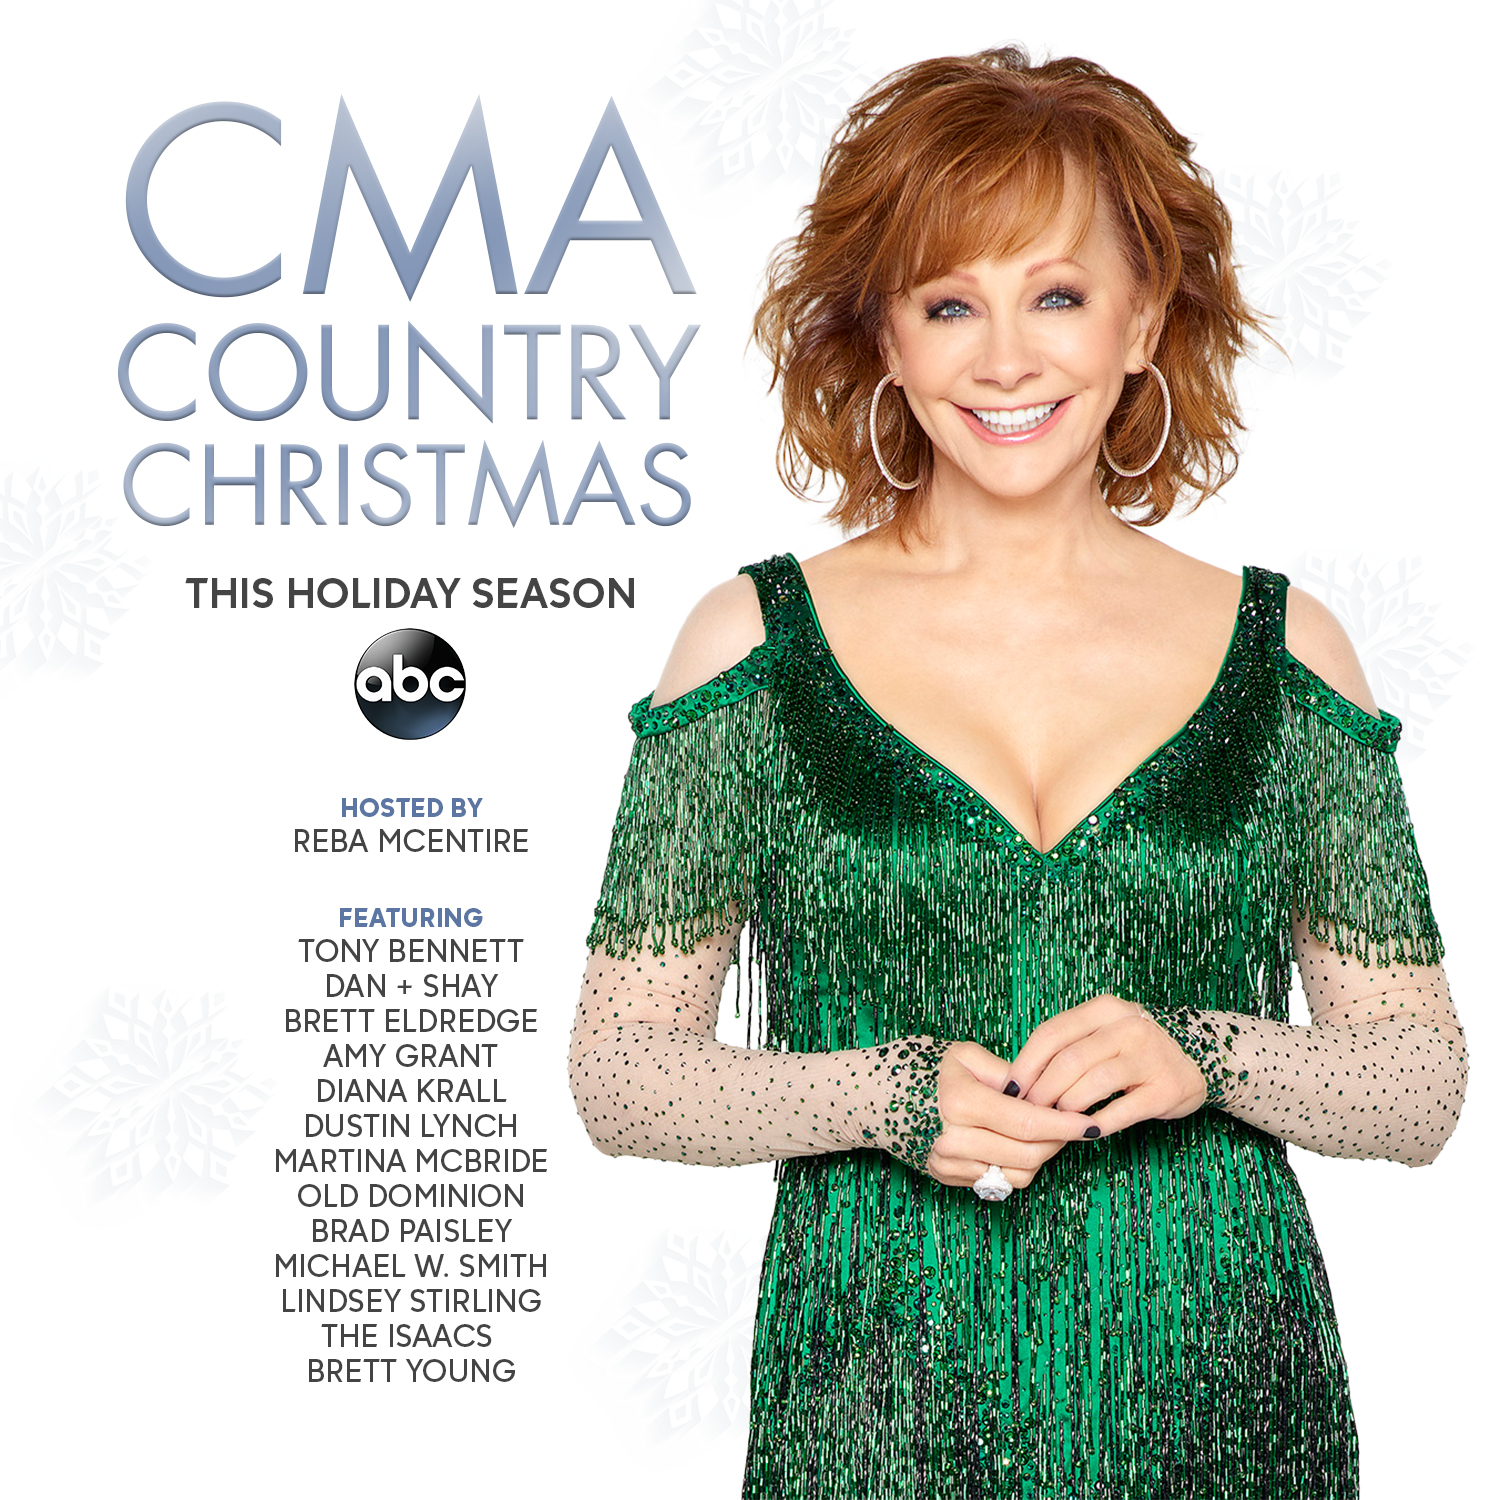 Cma Country Christmas 2019 Tickets REBA RETURNS TO CMA COUNTRY CHRISTMAS — Reba McEntire